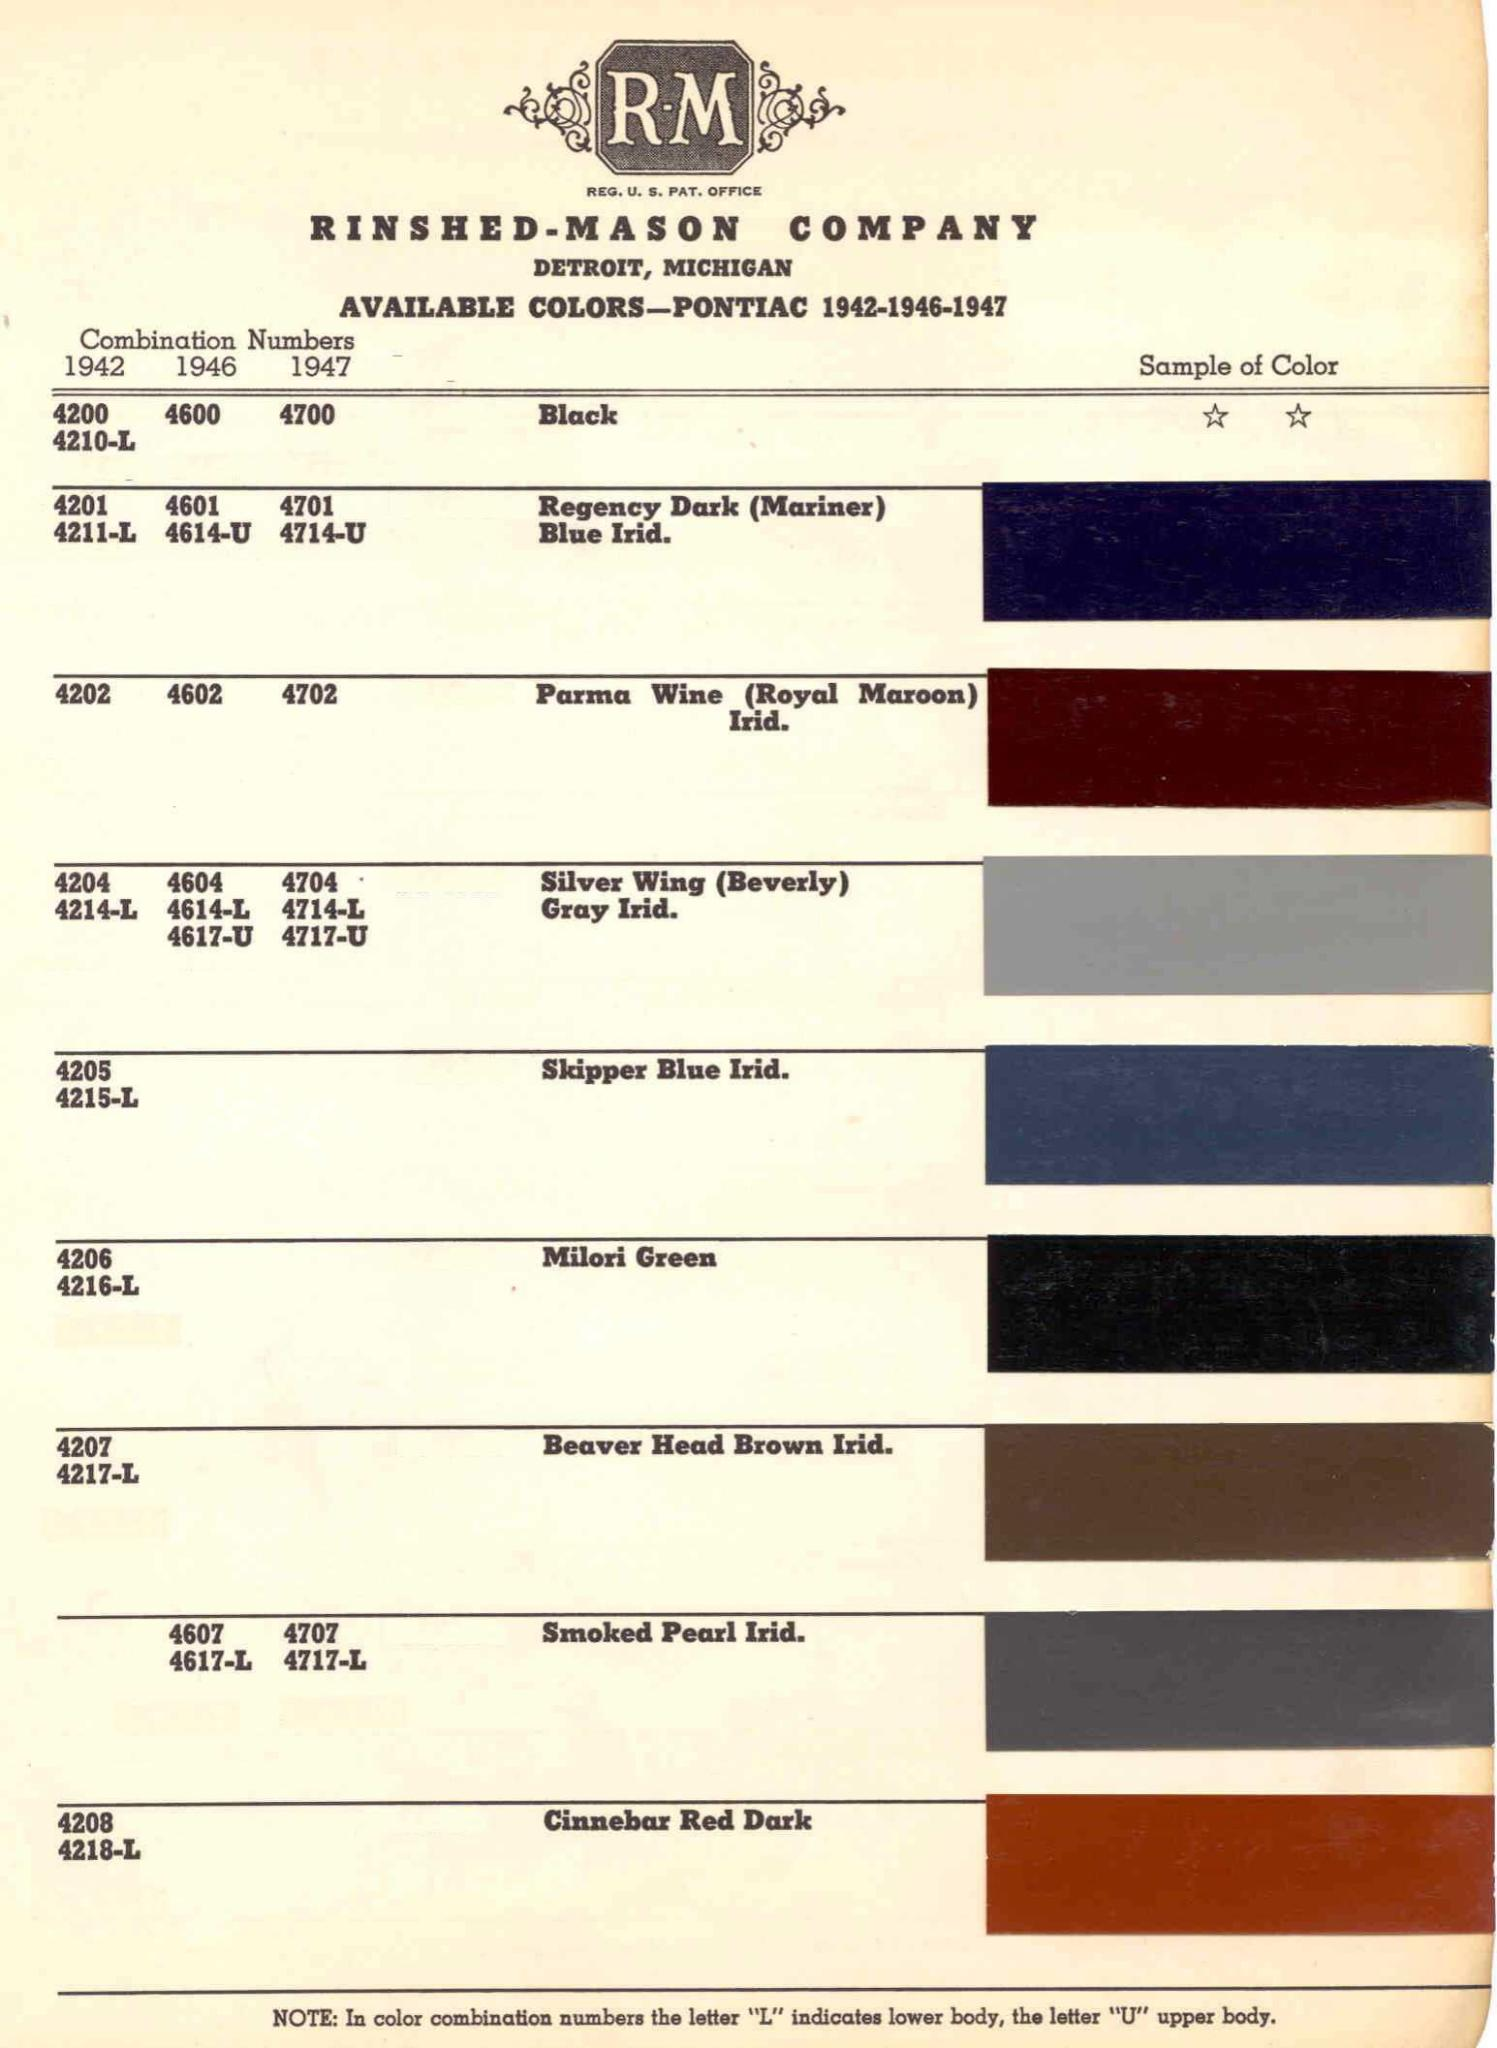 Color Code and Paint Color Chart for Pontiac for 1942-1947